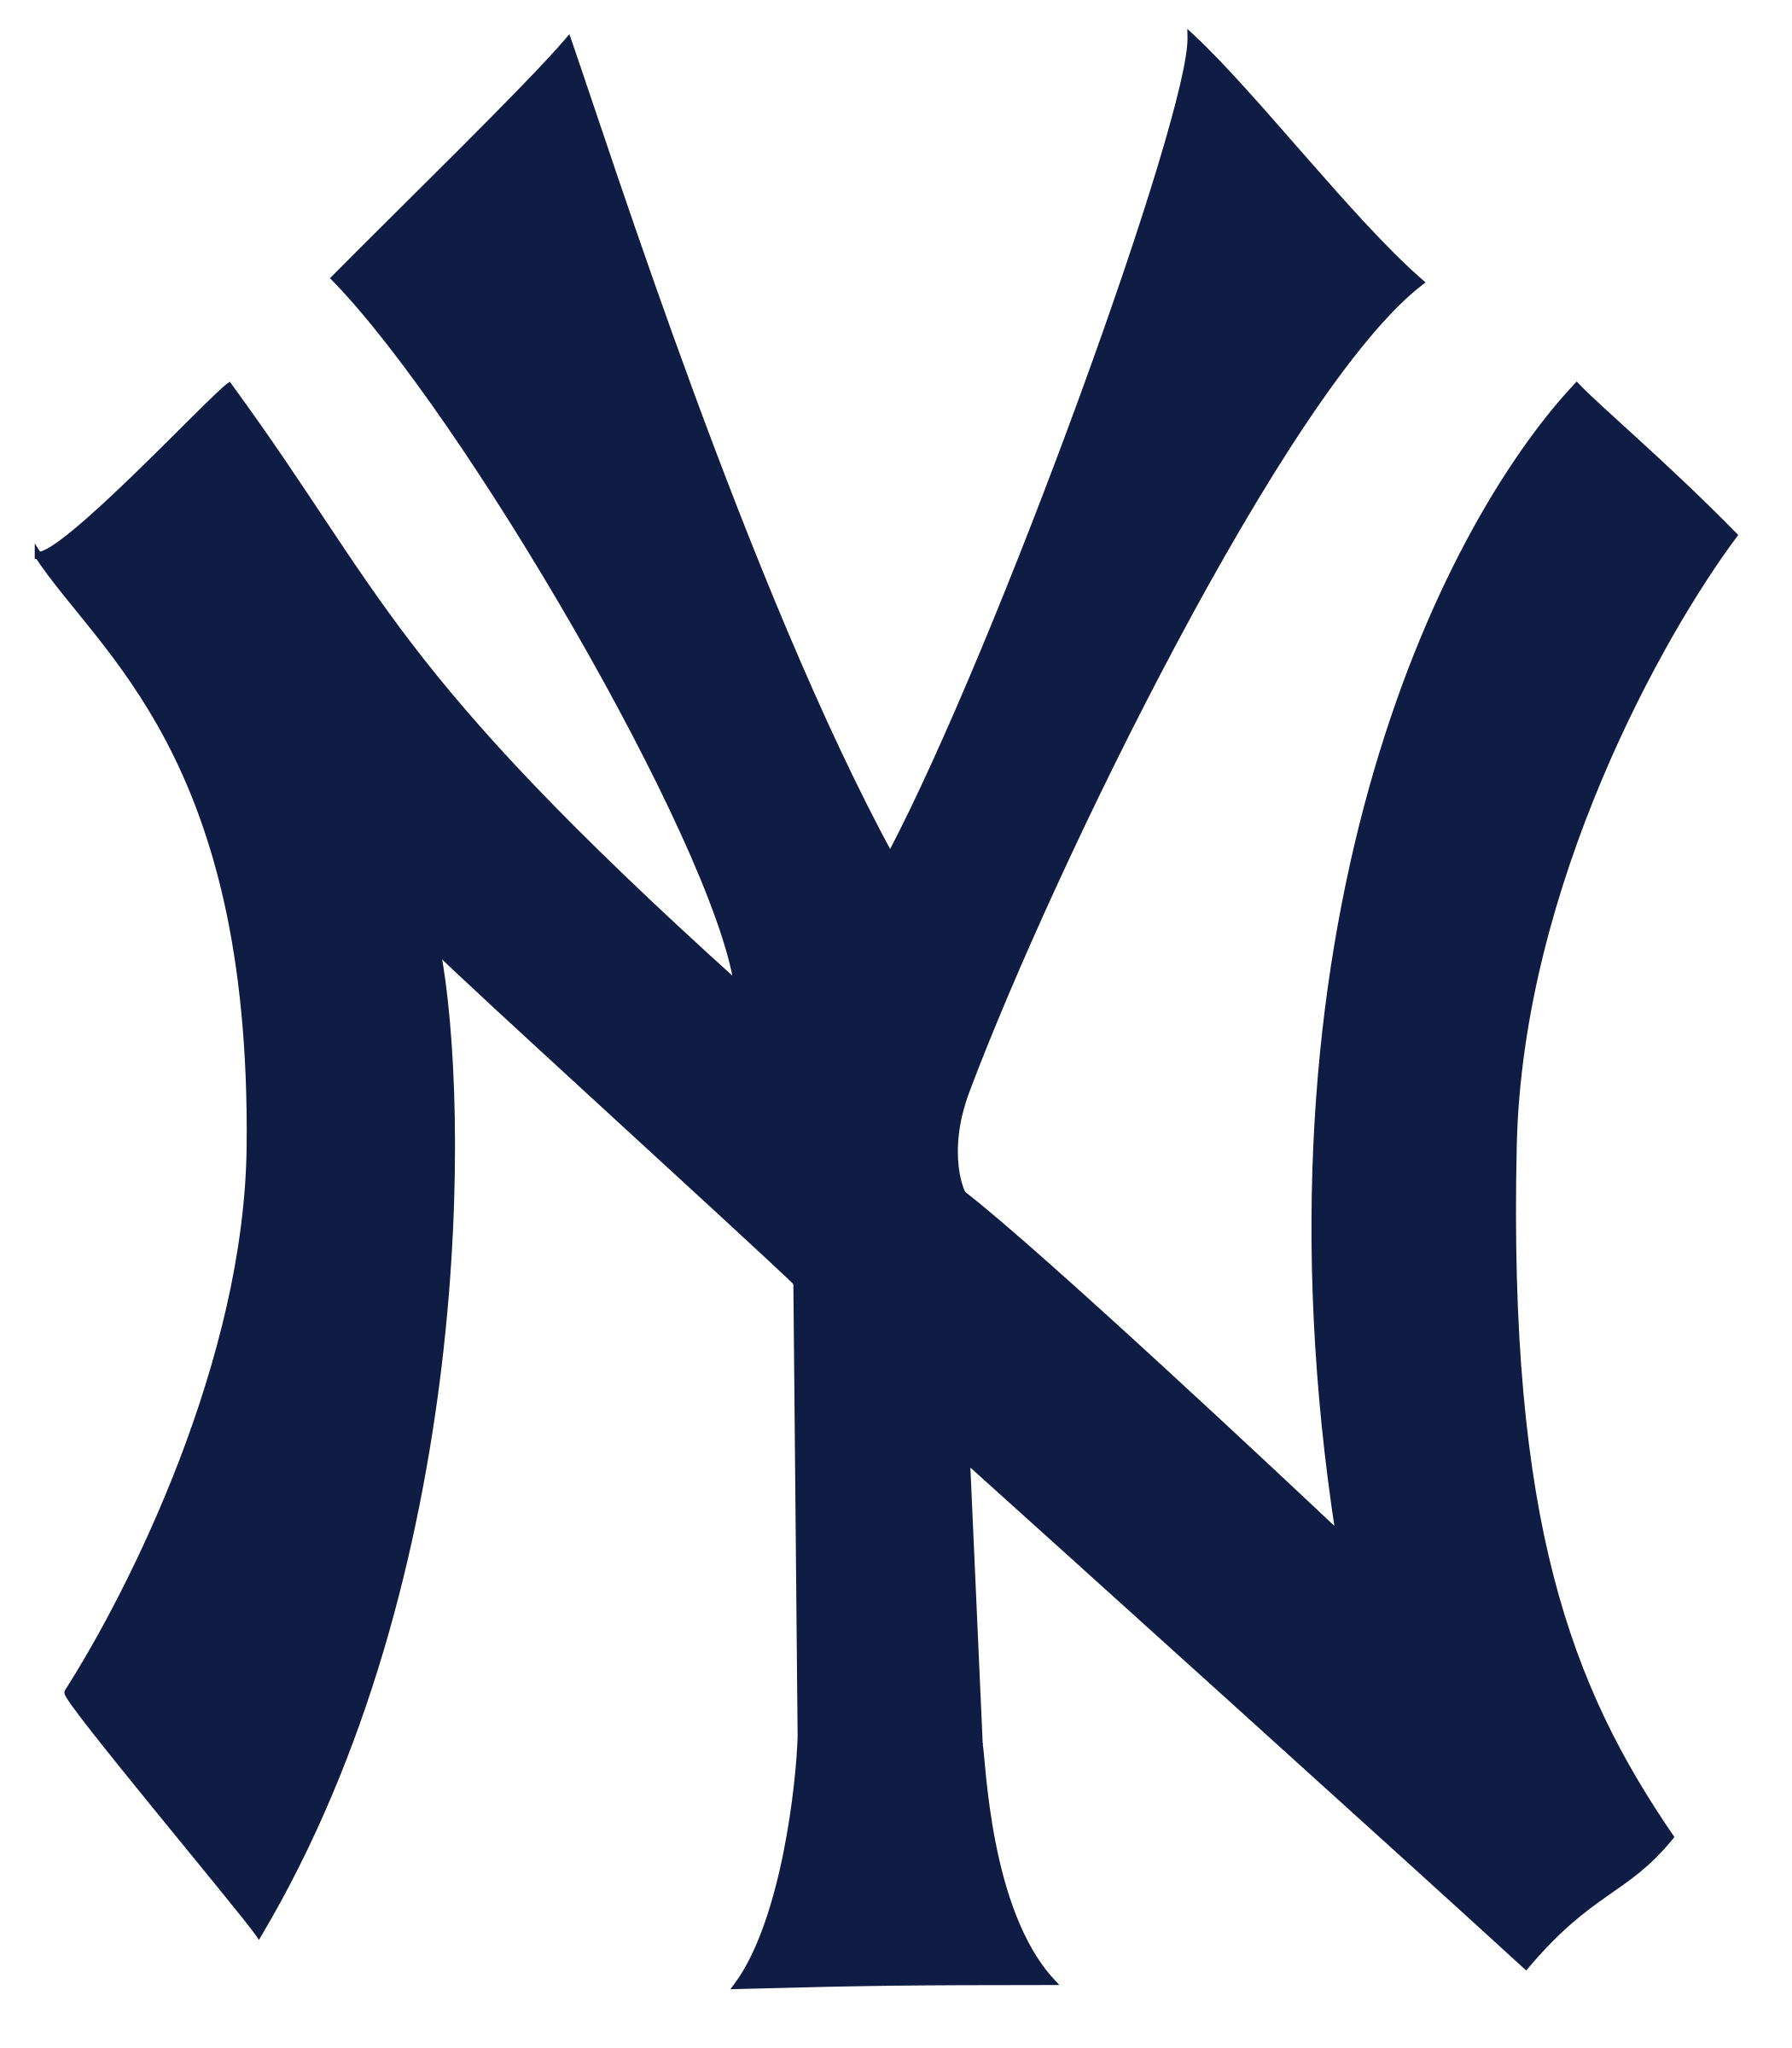 Yankees - Bing images